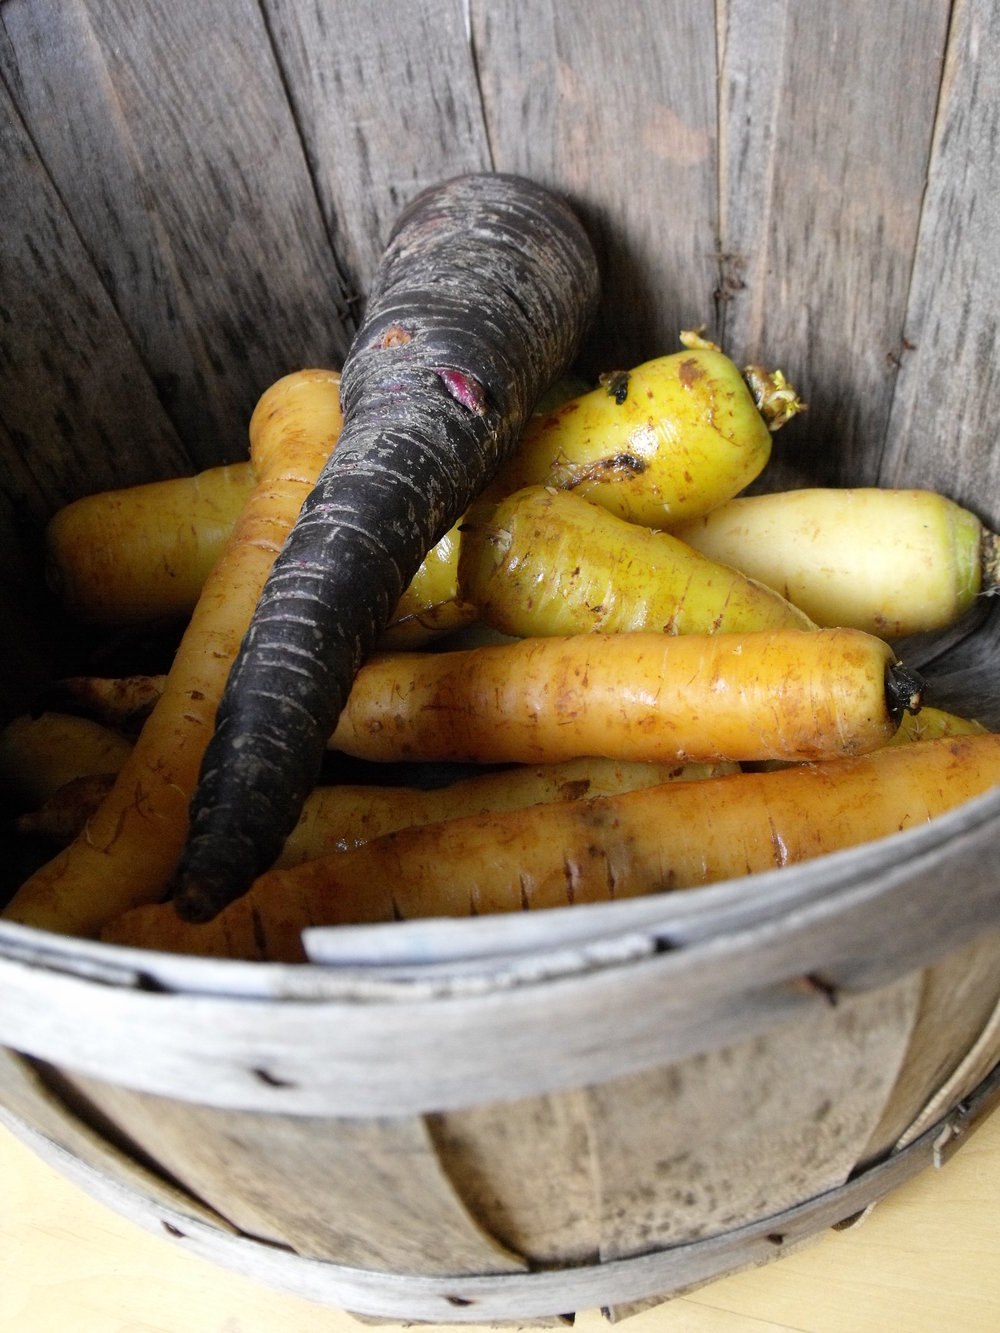 27 Carrots in bushel basket.JPG